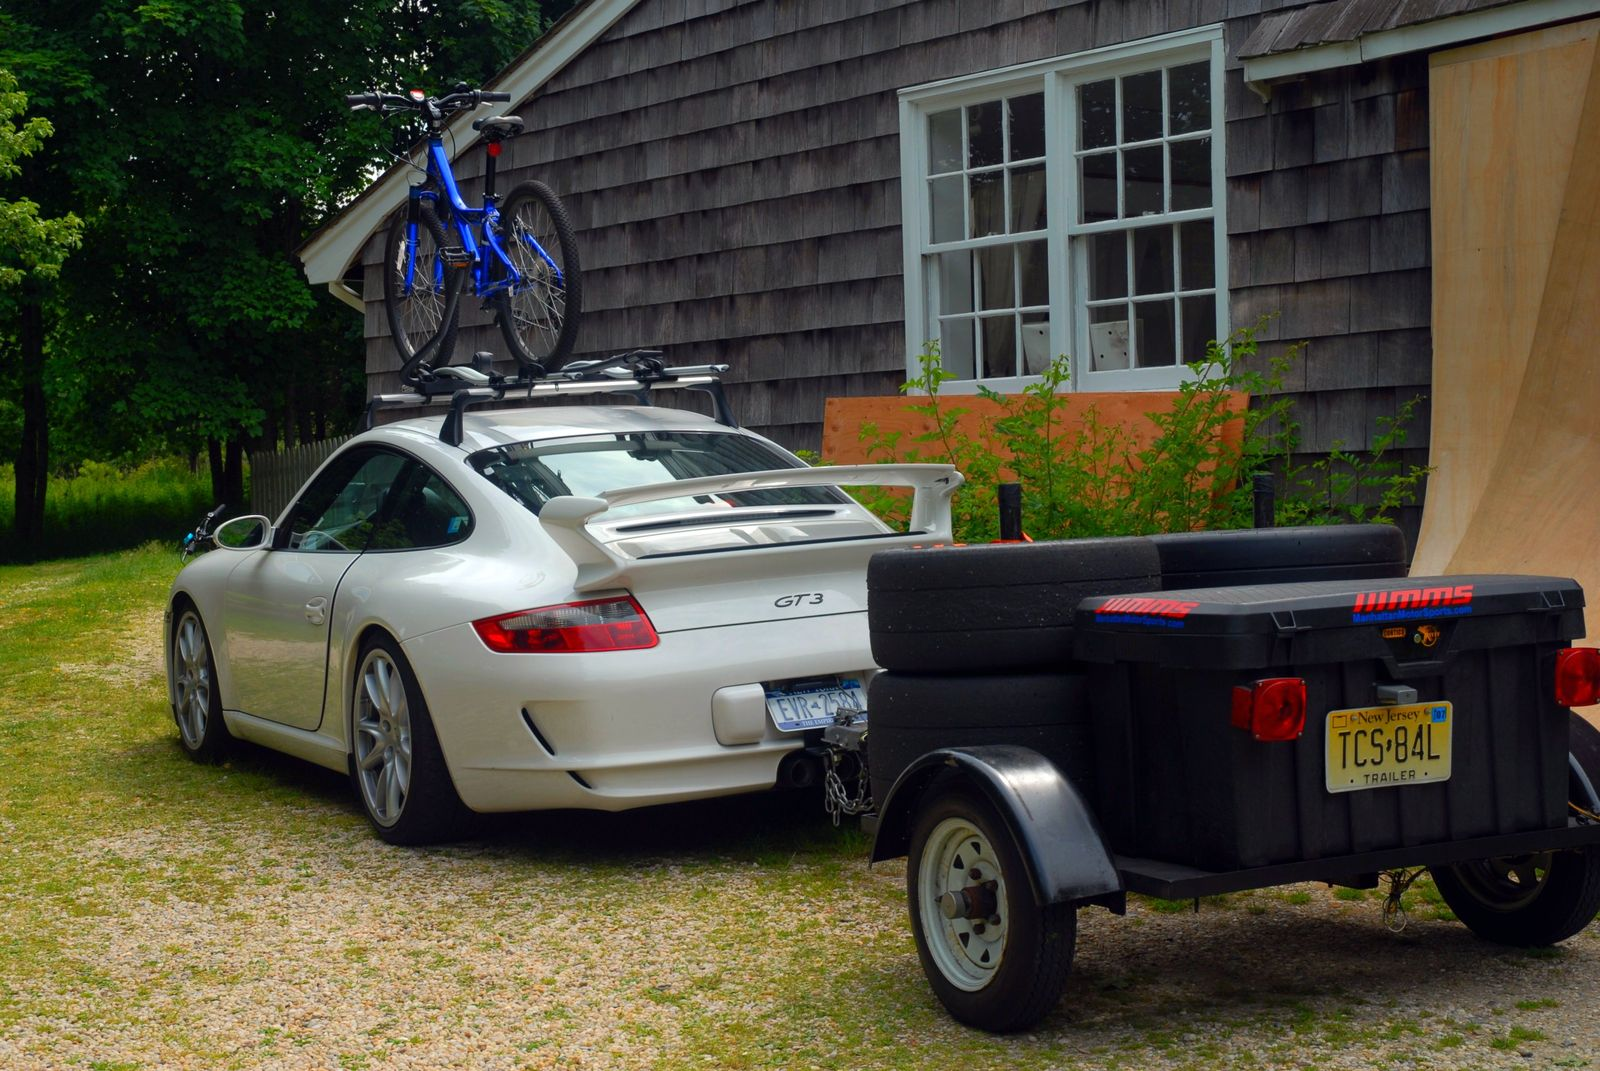 Porsche trailer bike rack